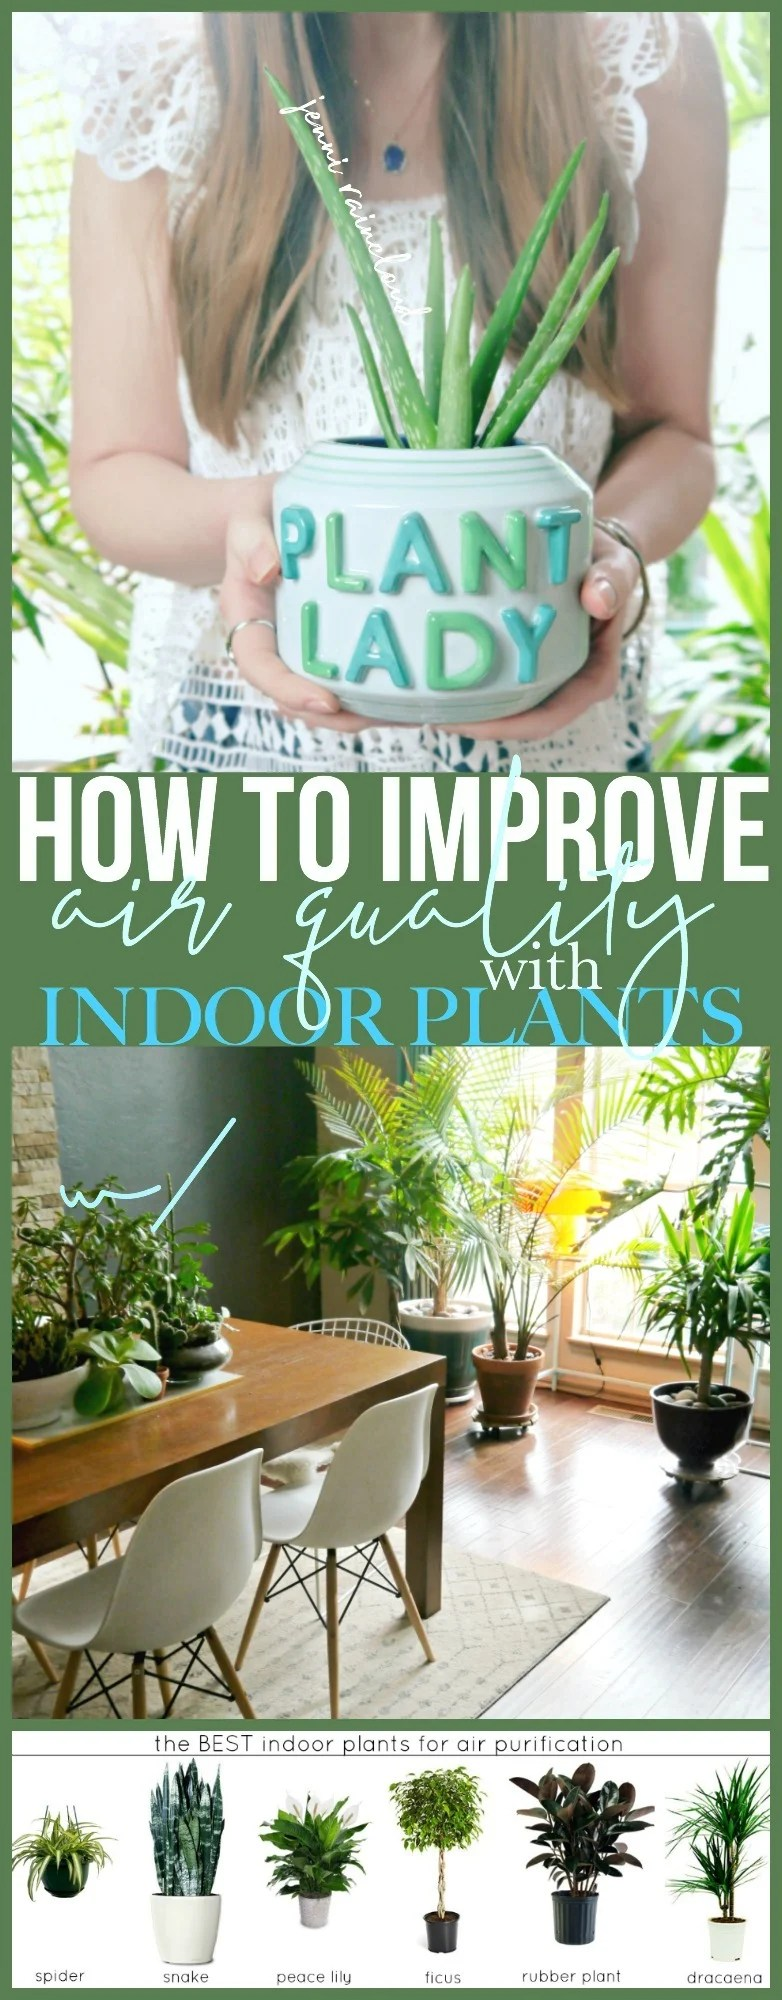 Air quality improvement with indoor plants